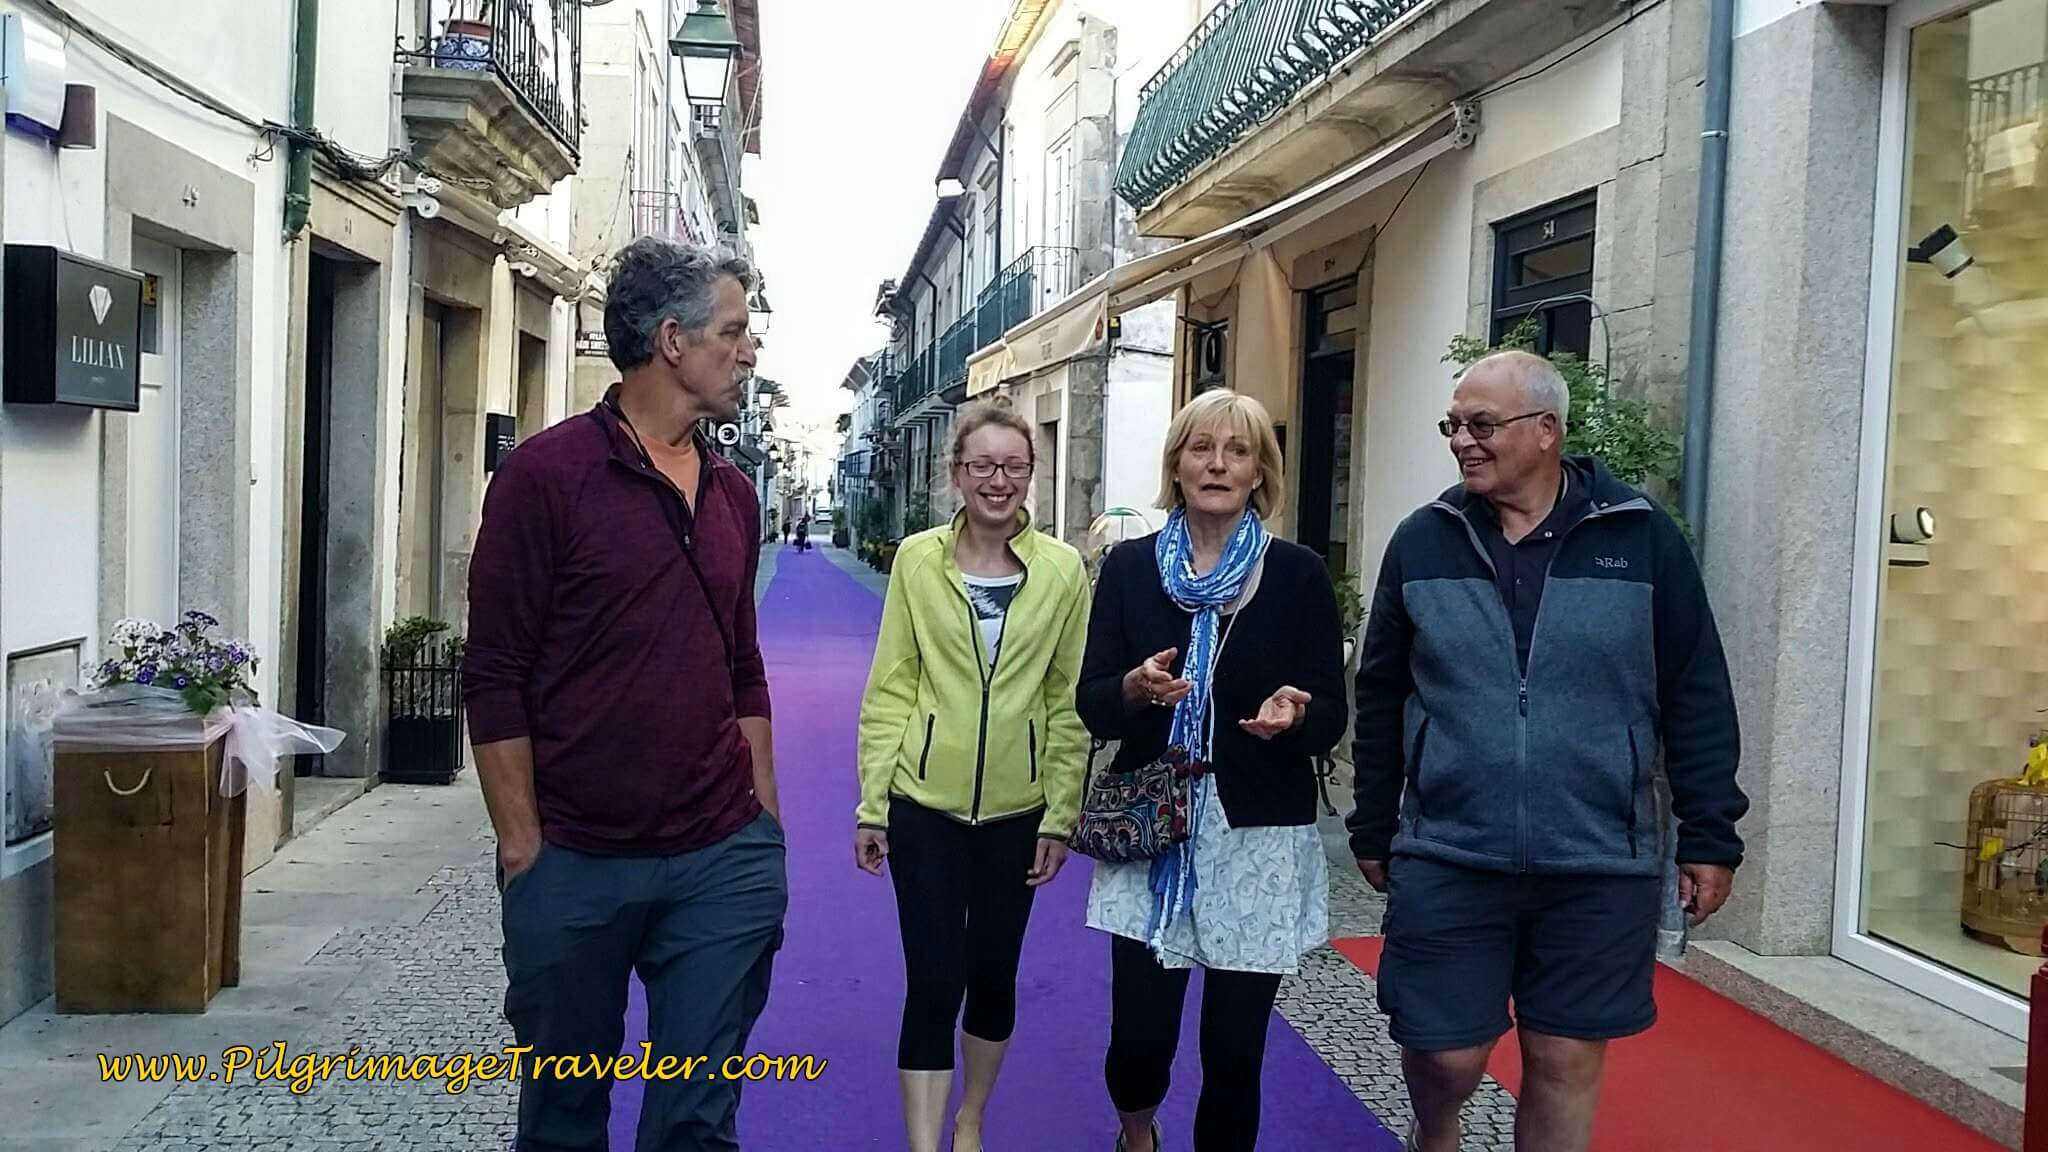 Rich, Tatiana, Yanni and Steve, Out to Dinner in Viana do Castelo on day seventeen of the Portugese Camino